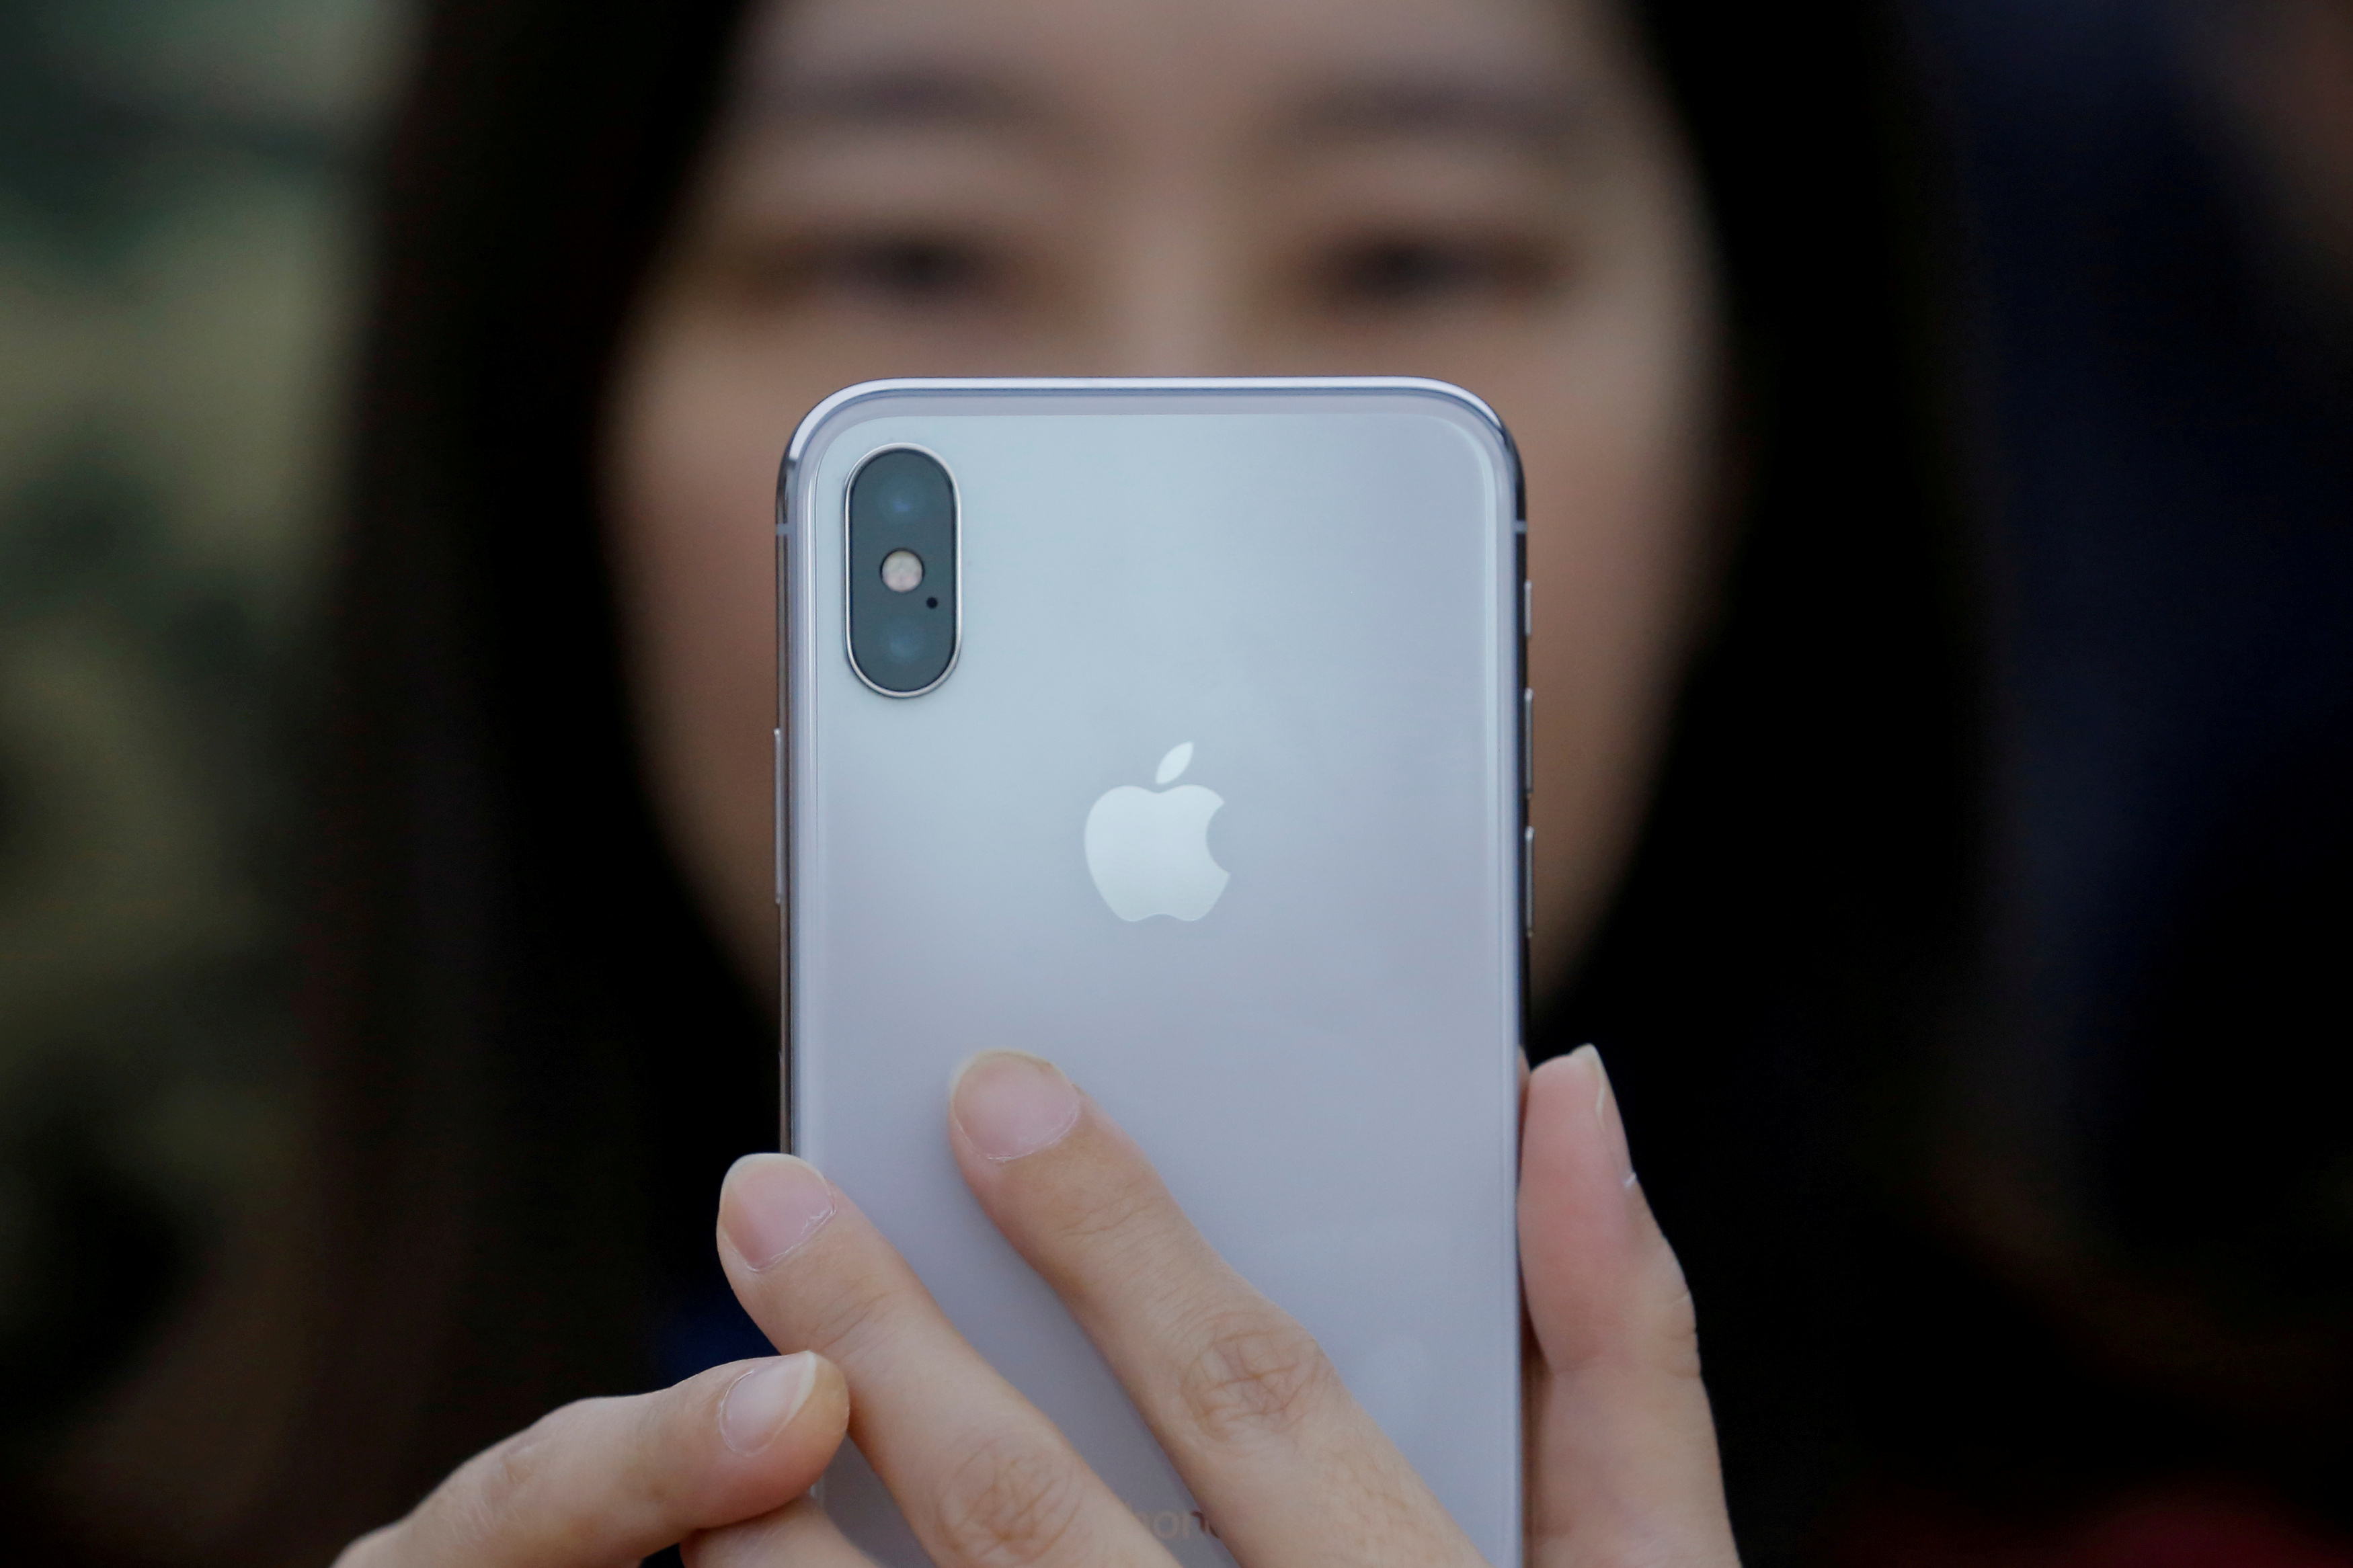 Security firm claims to thwart iPhone X's Face ID with special mask